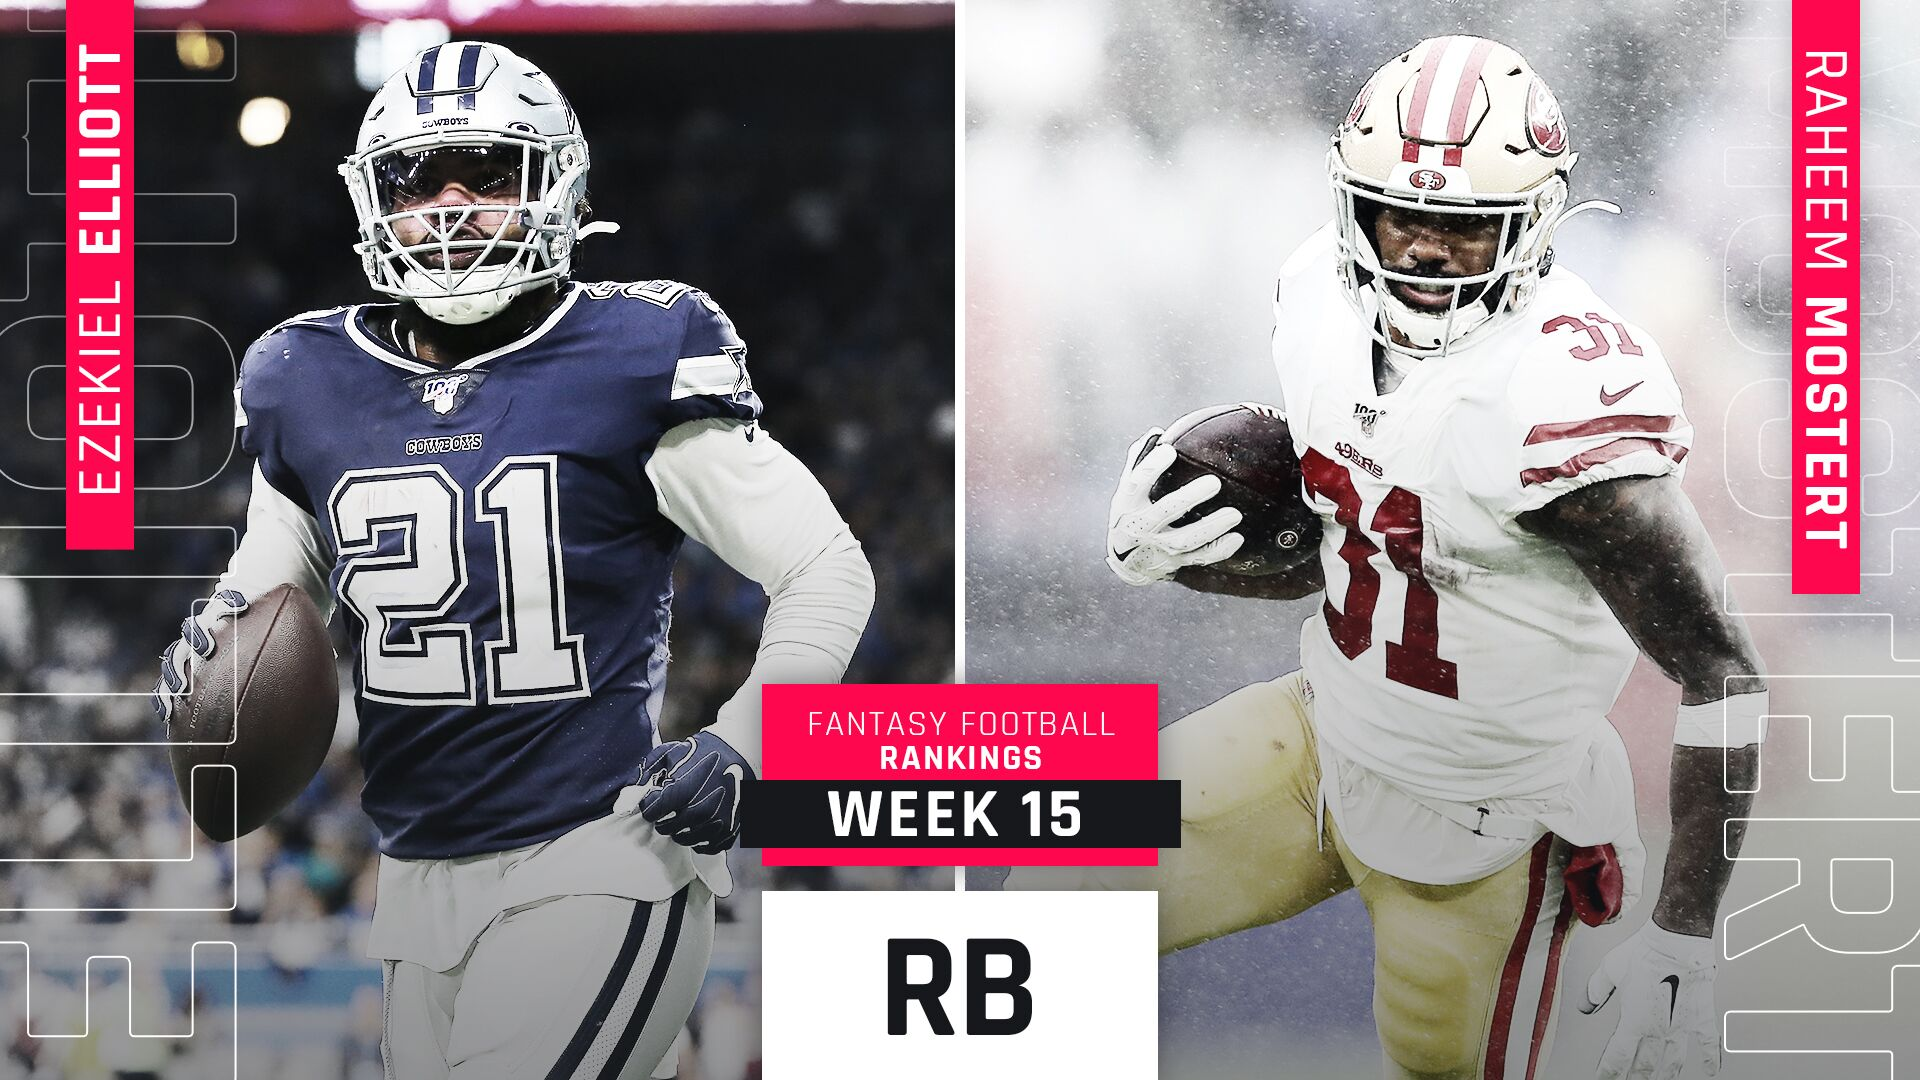 Week 15 Fantasy RB Rankings: Todd Gurley, Raheem Mostert moving up during fantasy playoffs